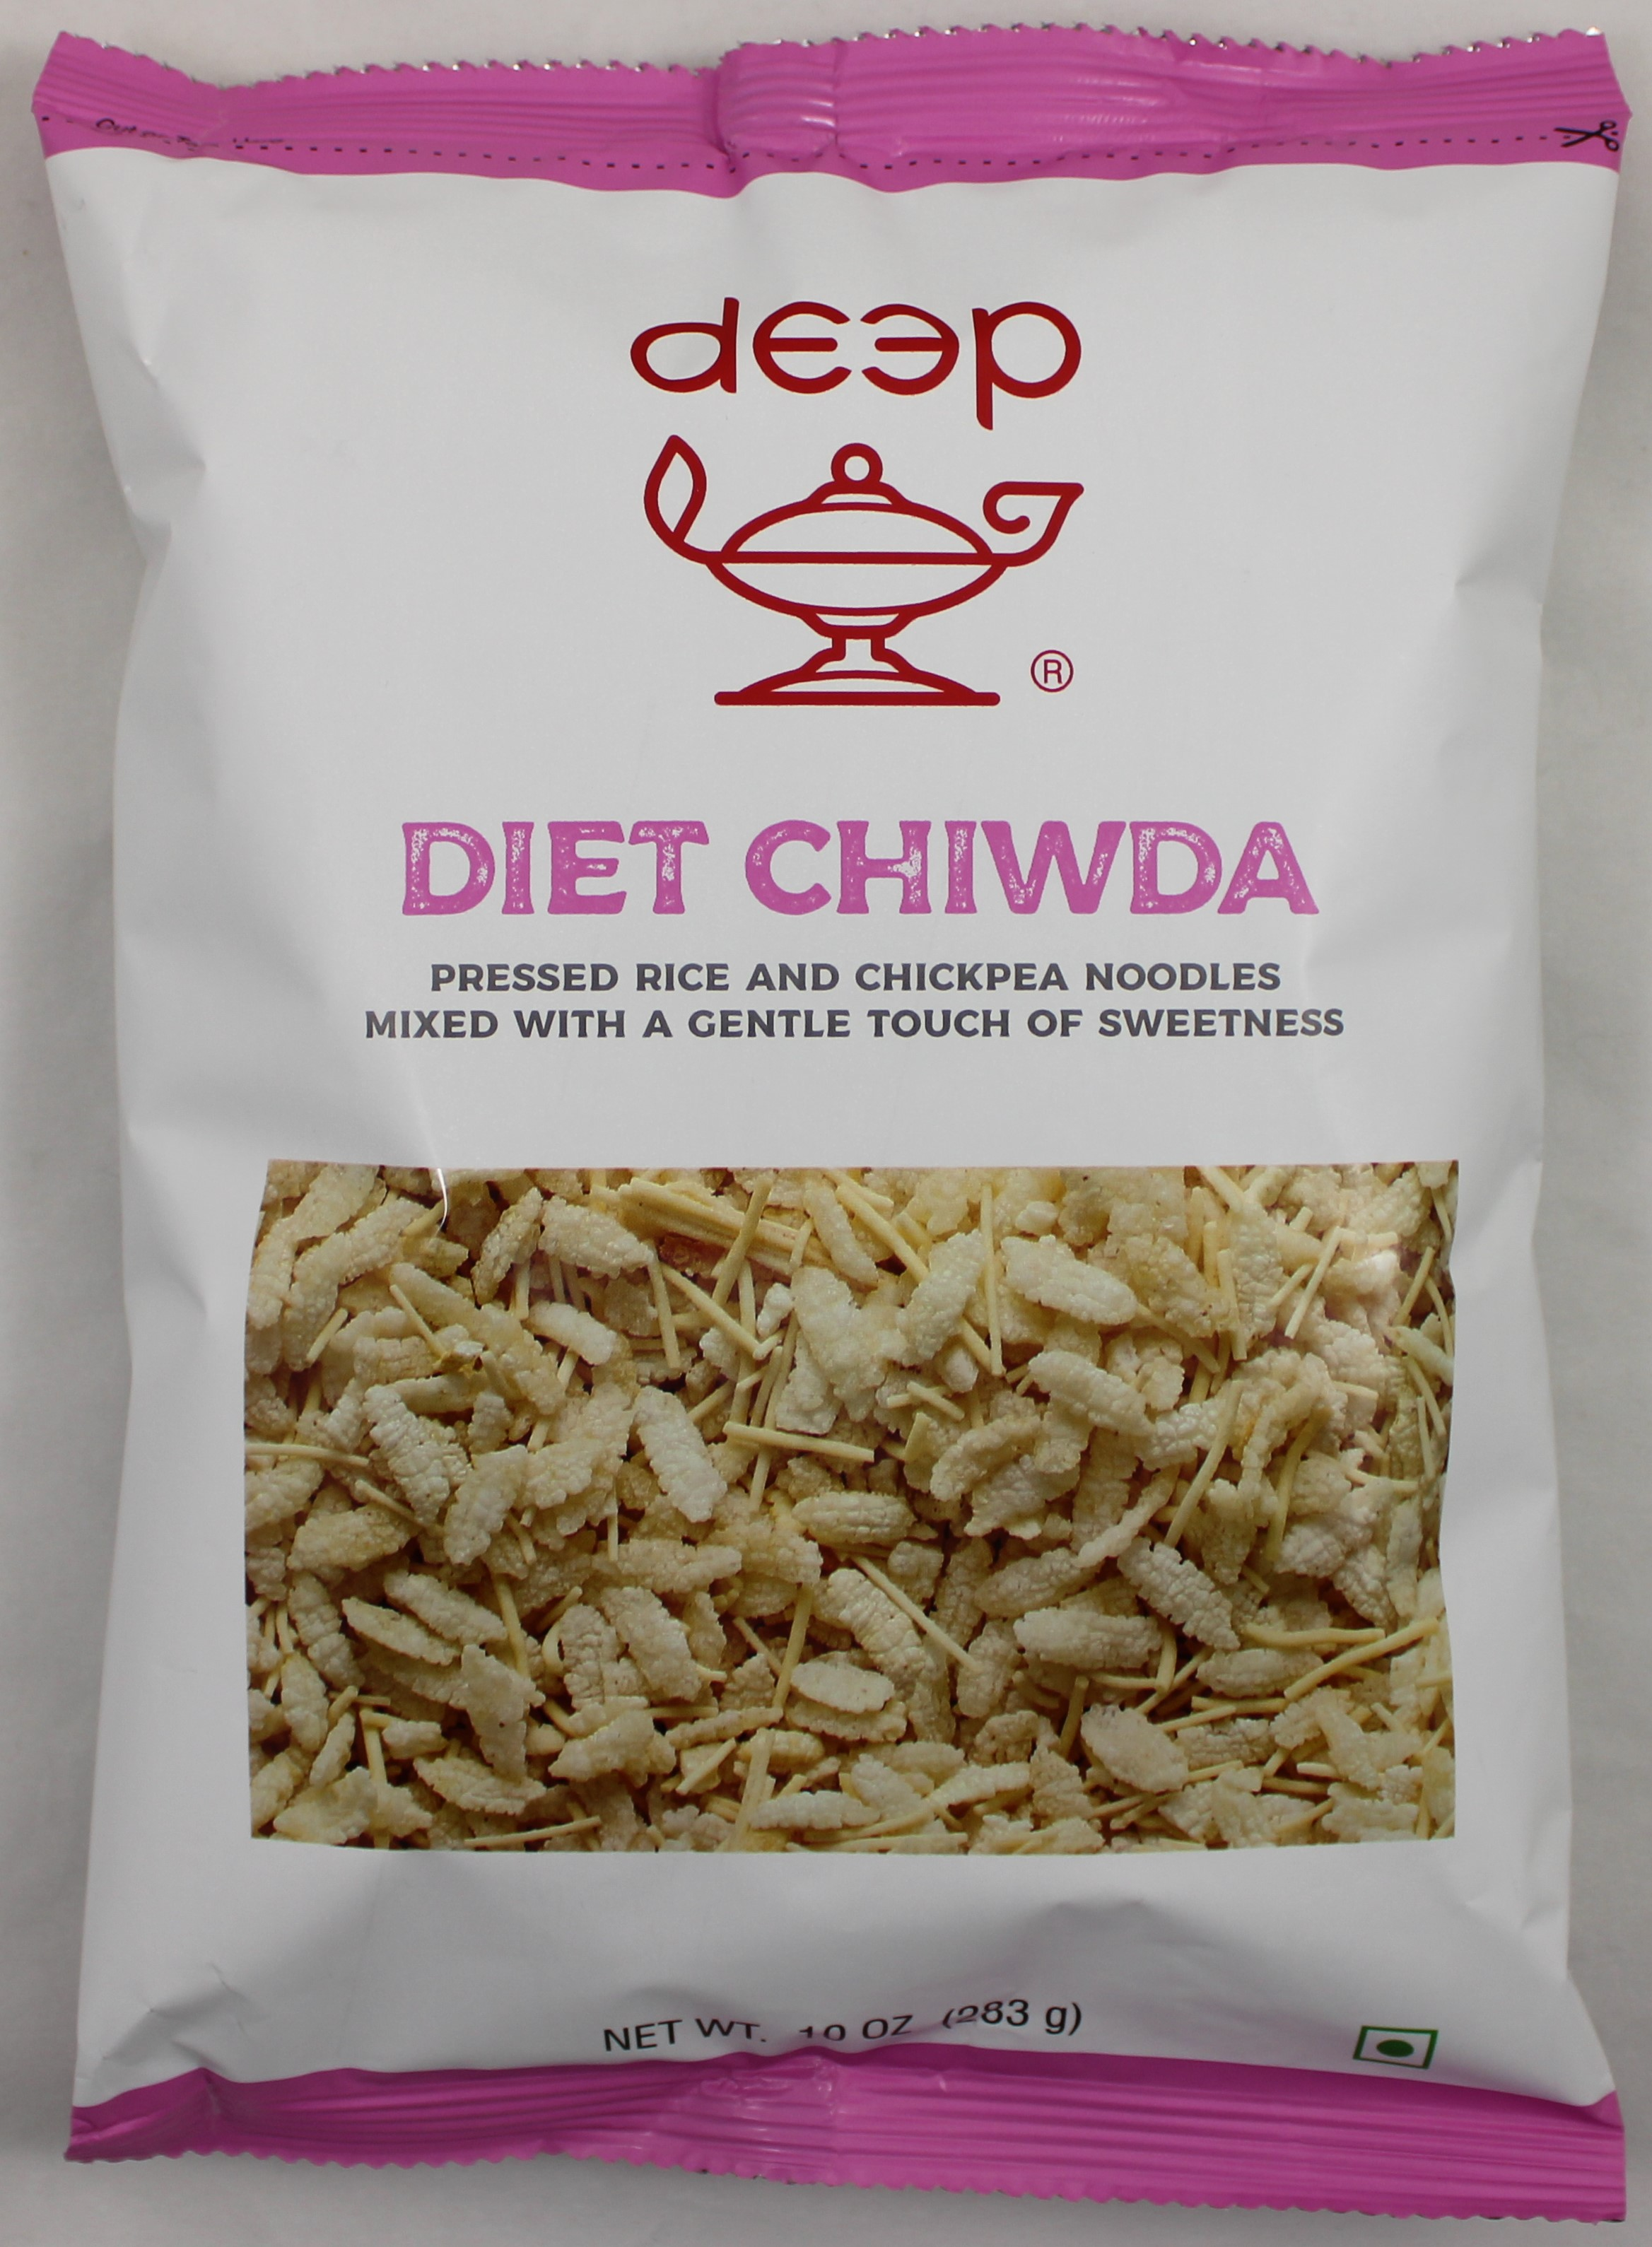 Indian Grocery - Diet Chiwda 10oz